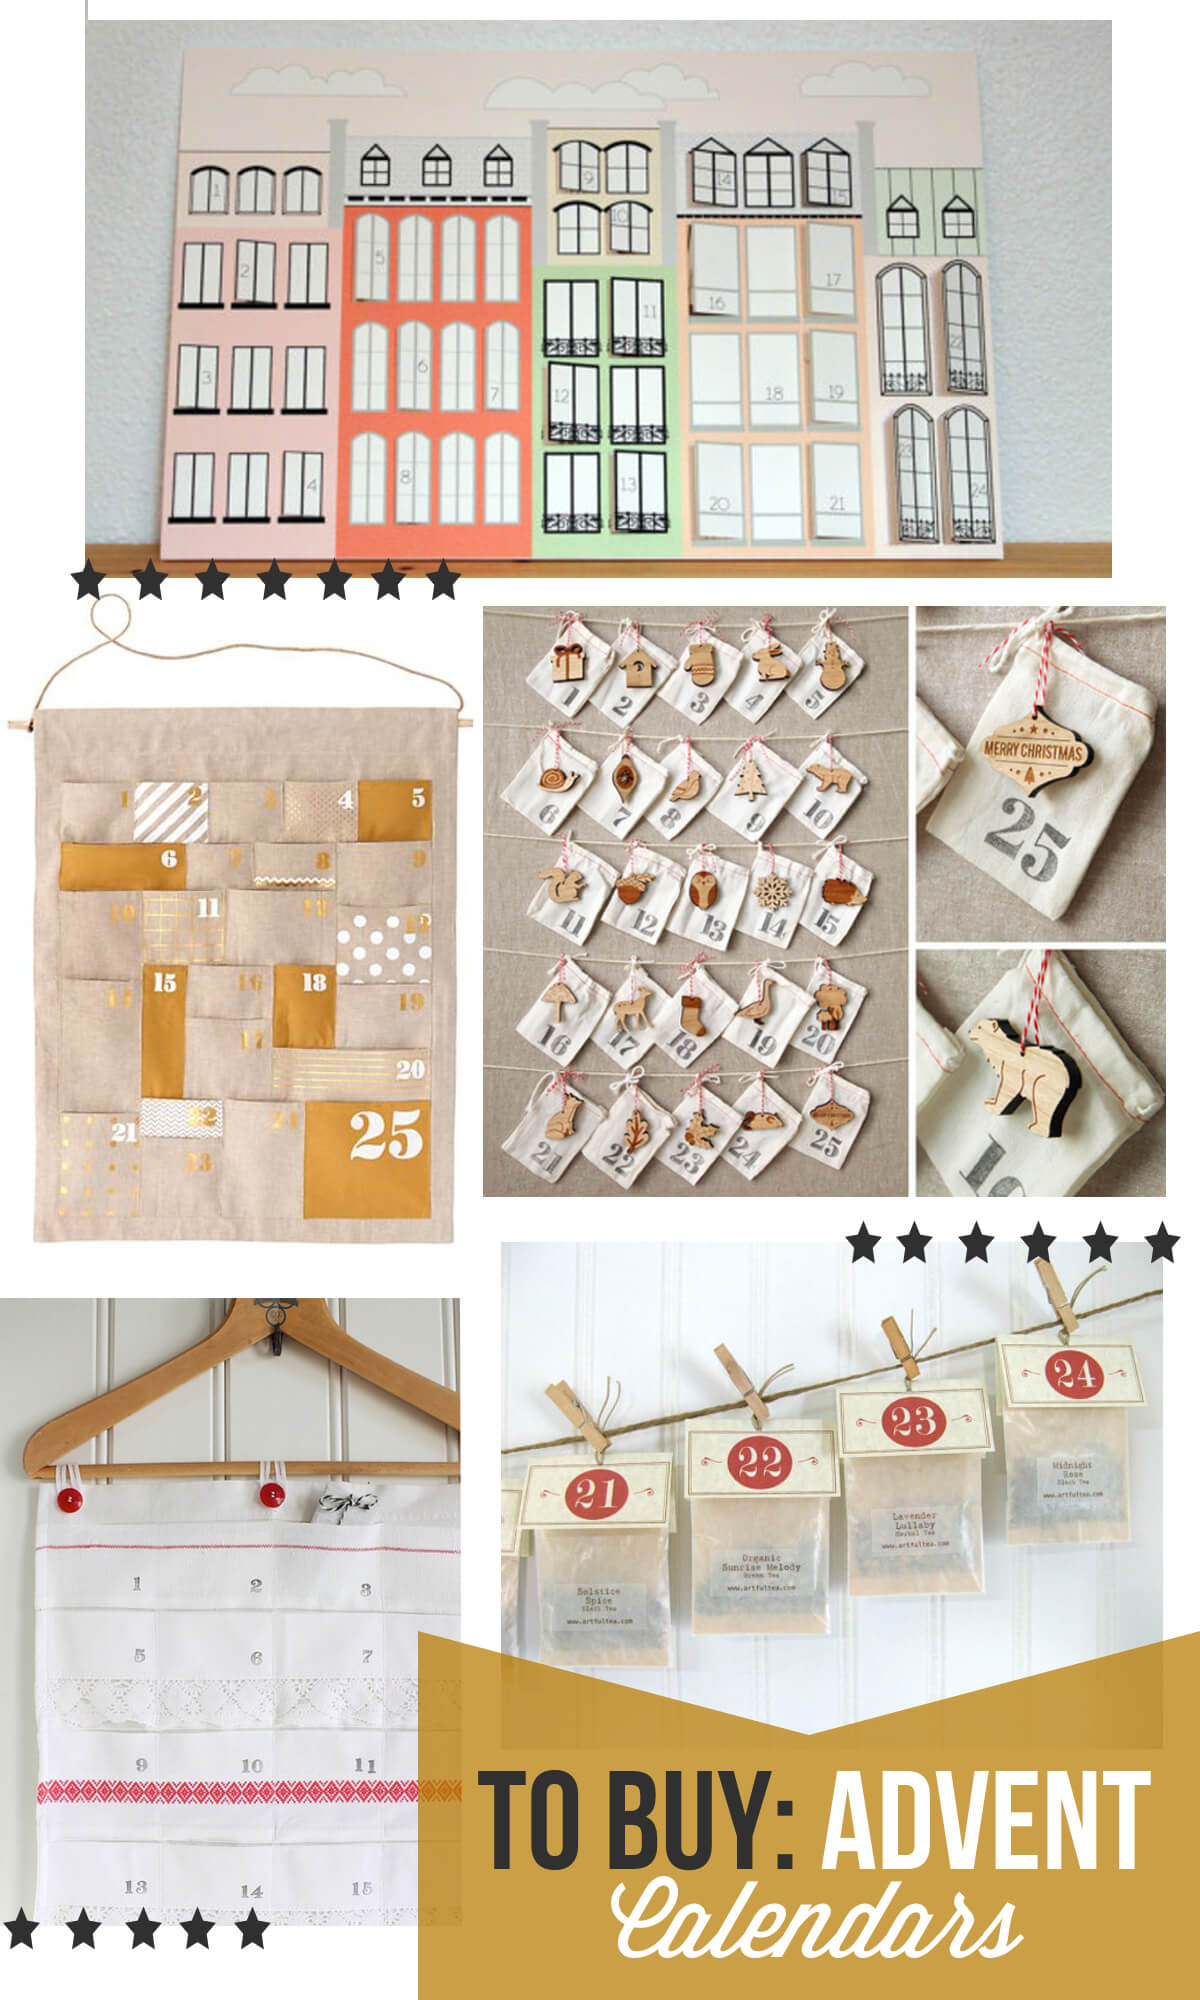 Advent Calendar House Diy : Advent calendars to buy gimme some oven